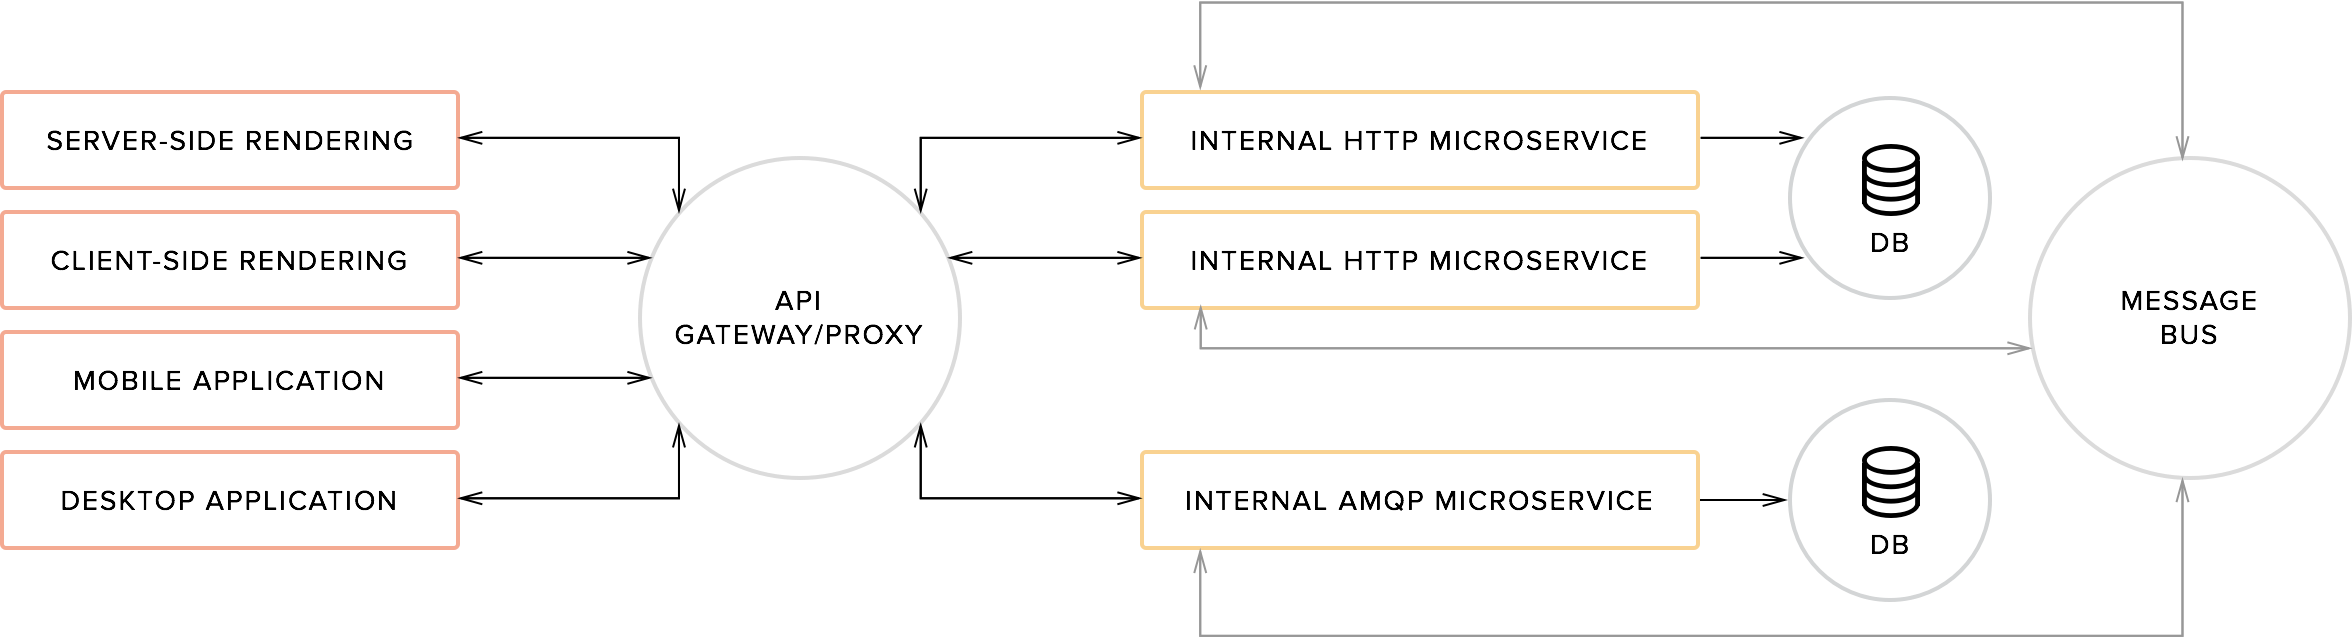 Typical microservices diagram